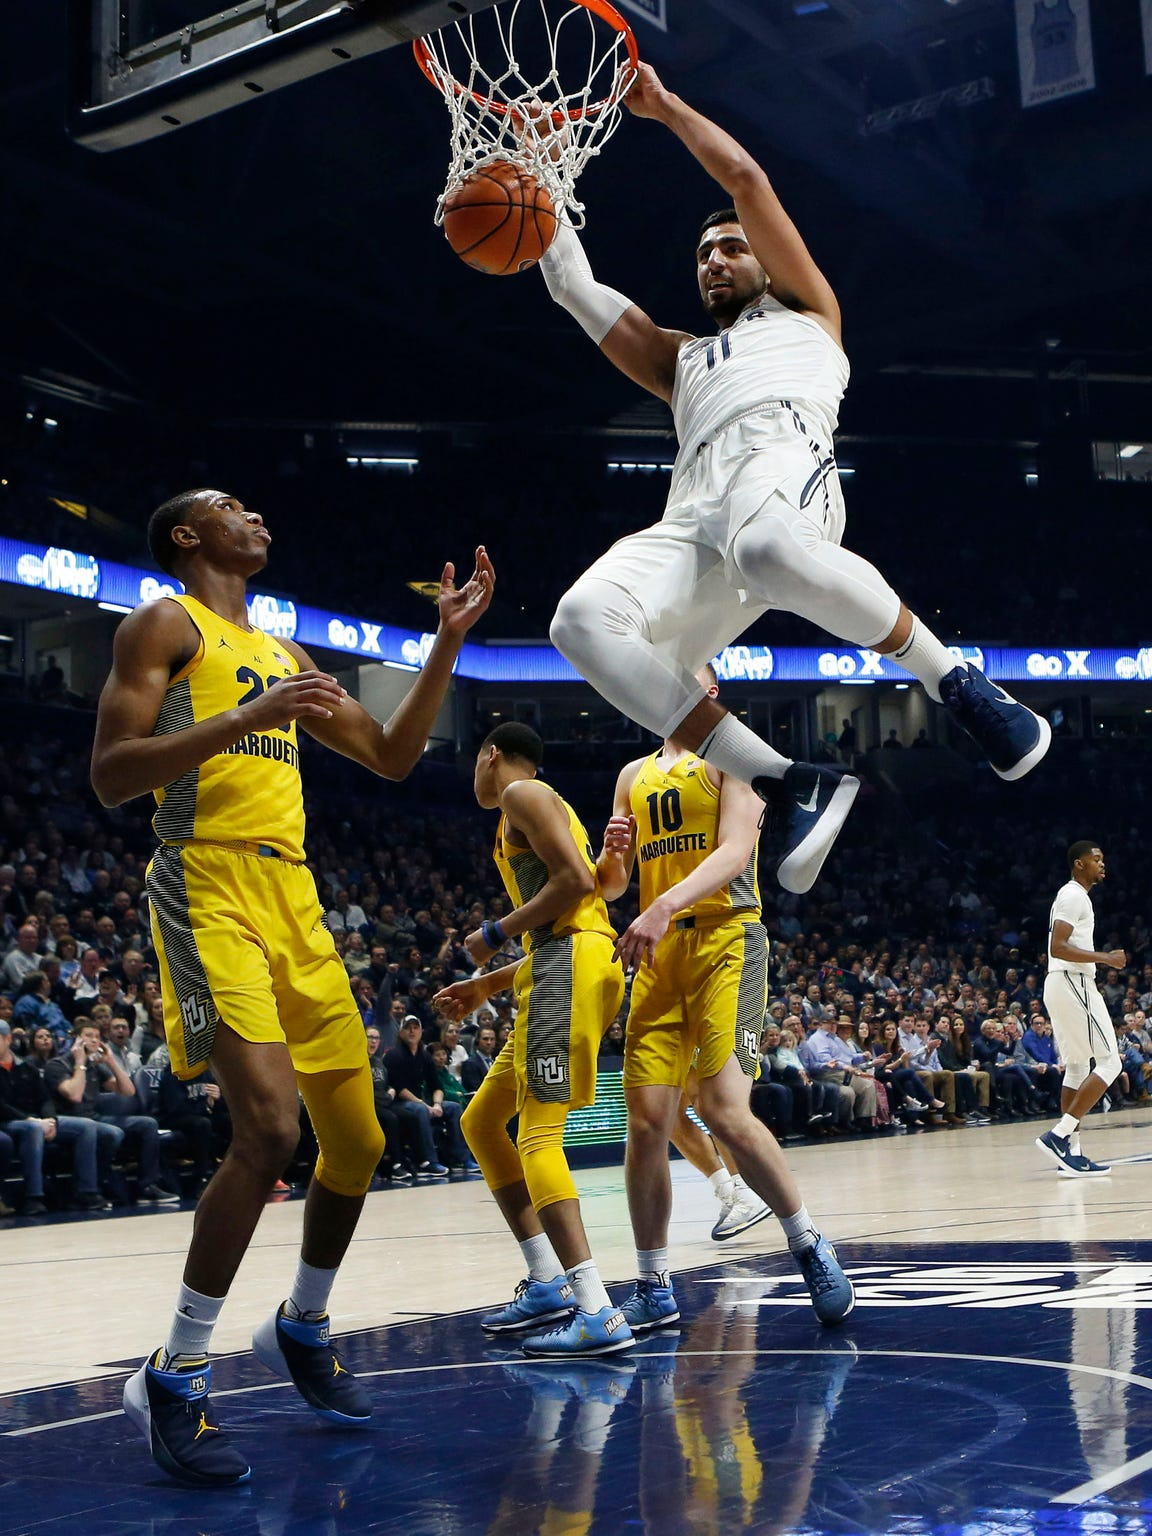 Xavier forward Kerem Kanter throws down a dunk against